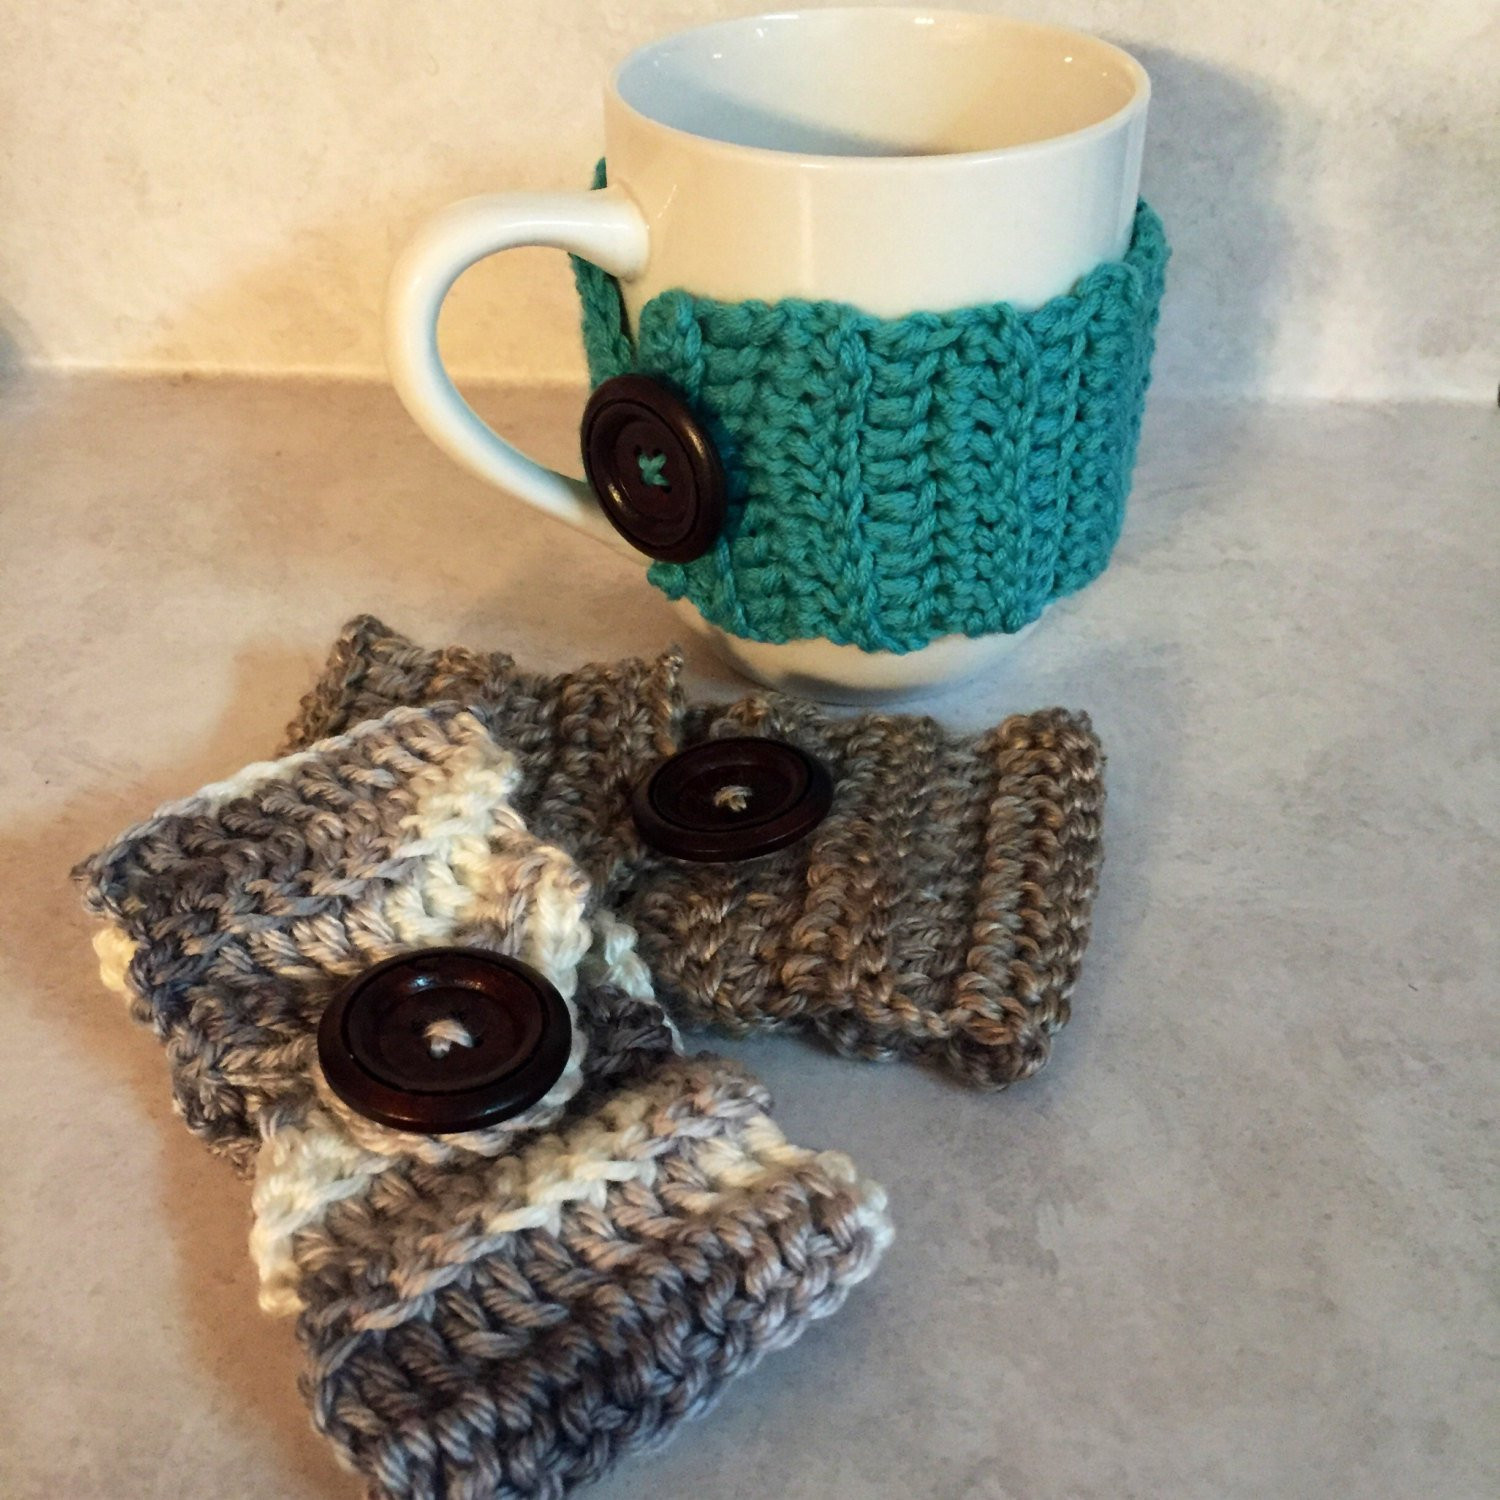 Crochet Coffee Cup Cozy New Crochet Tea Cozy Coffee Cup Sleeve Coffee Sleeve Mug Cozy Of Crochet Coffee Cup Cozy Luxury Happy Holidays Handmade Gift Idea Crochet Heart Coffee